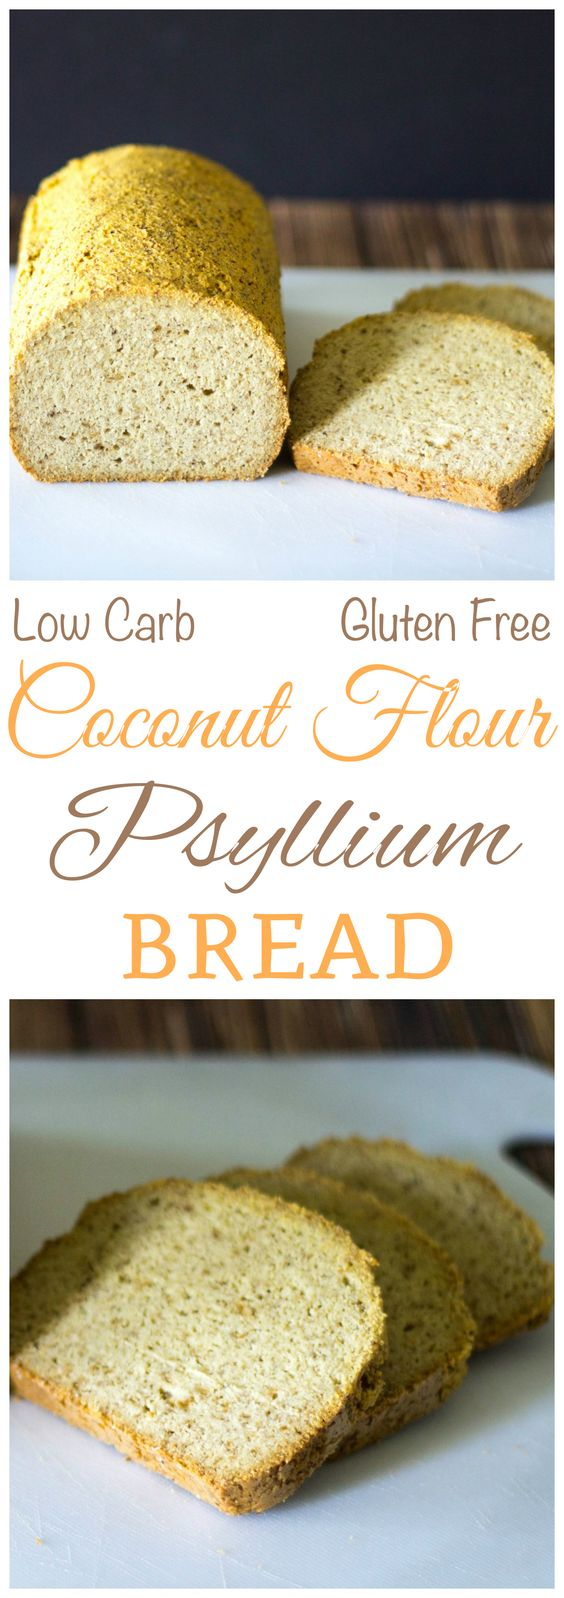 Try this gluten free coconut flour psyllium husk bread recipe. It's a tasty low carb bread to serve with breakfast or dinner.